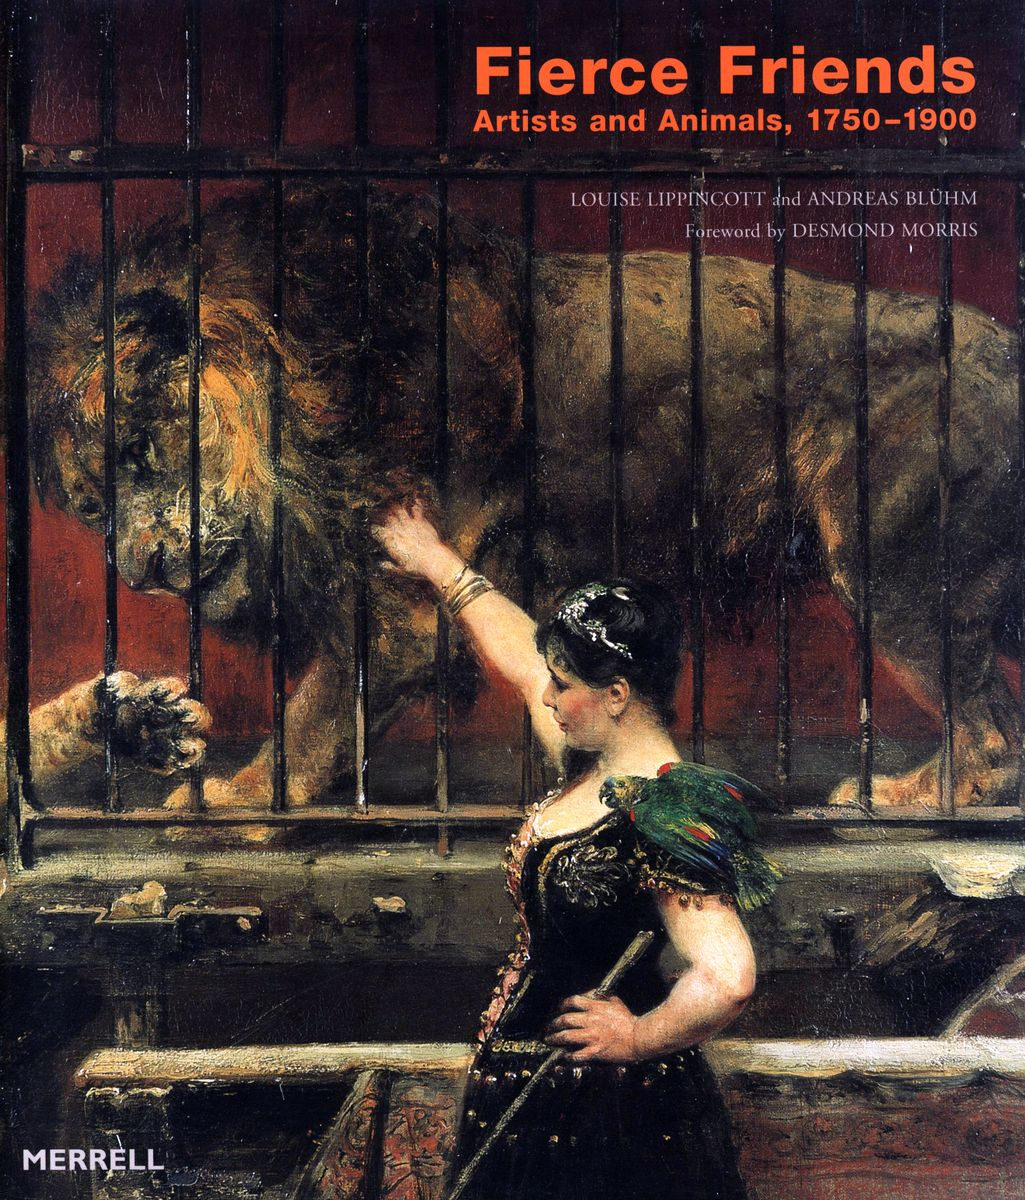 Fierce friends: Artists and Animals, 1750-1900 по 1 500.00 руб от изд. Mercatorfonds